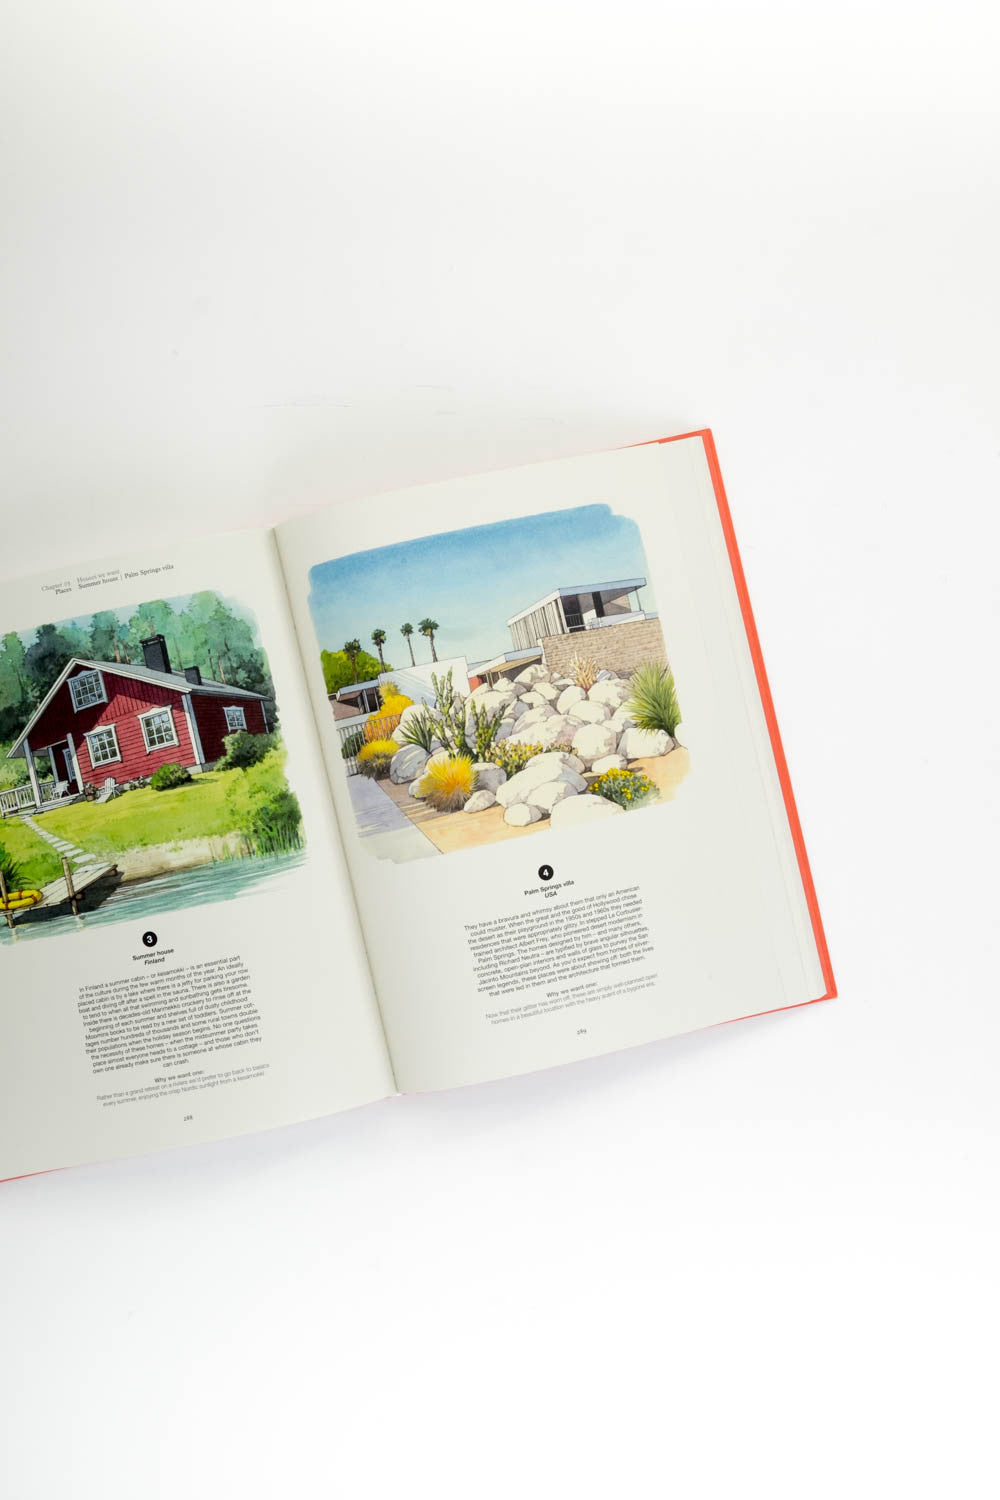 The Monocle Guide To Cosy Homes, Books, LKG Gestalten - Six and Sons